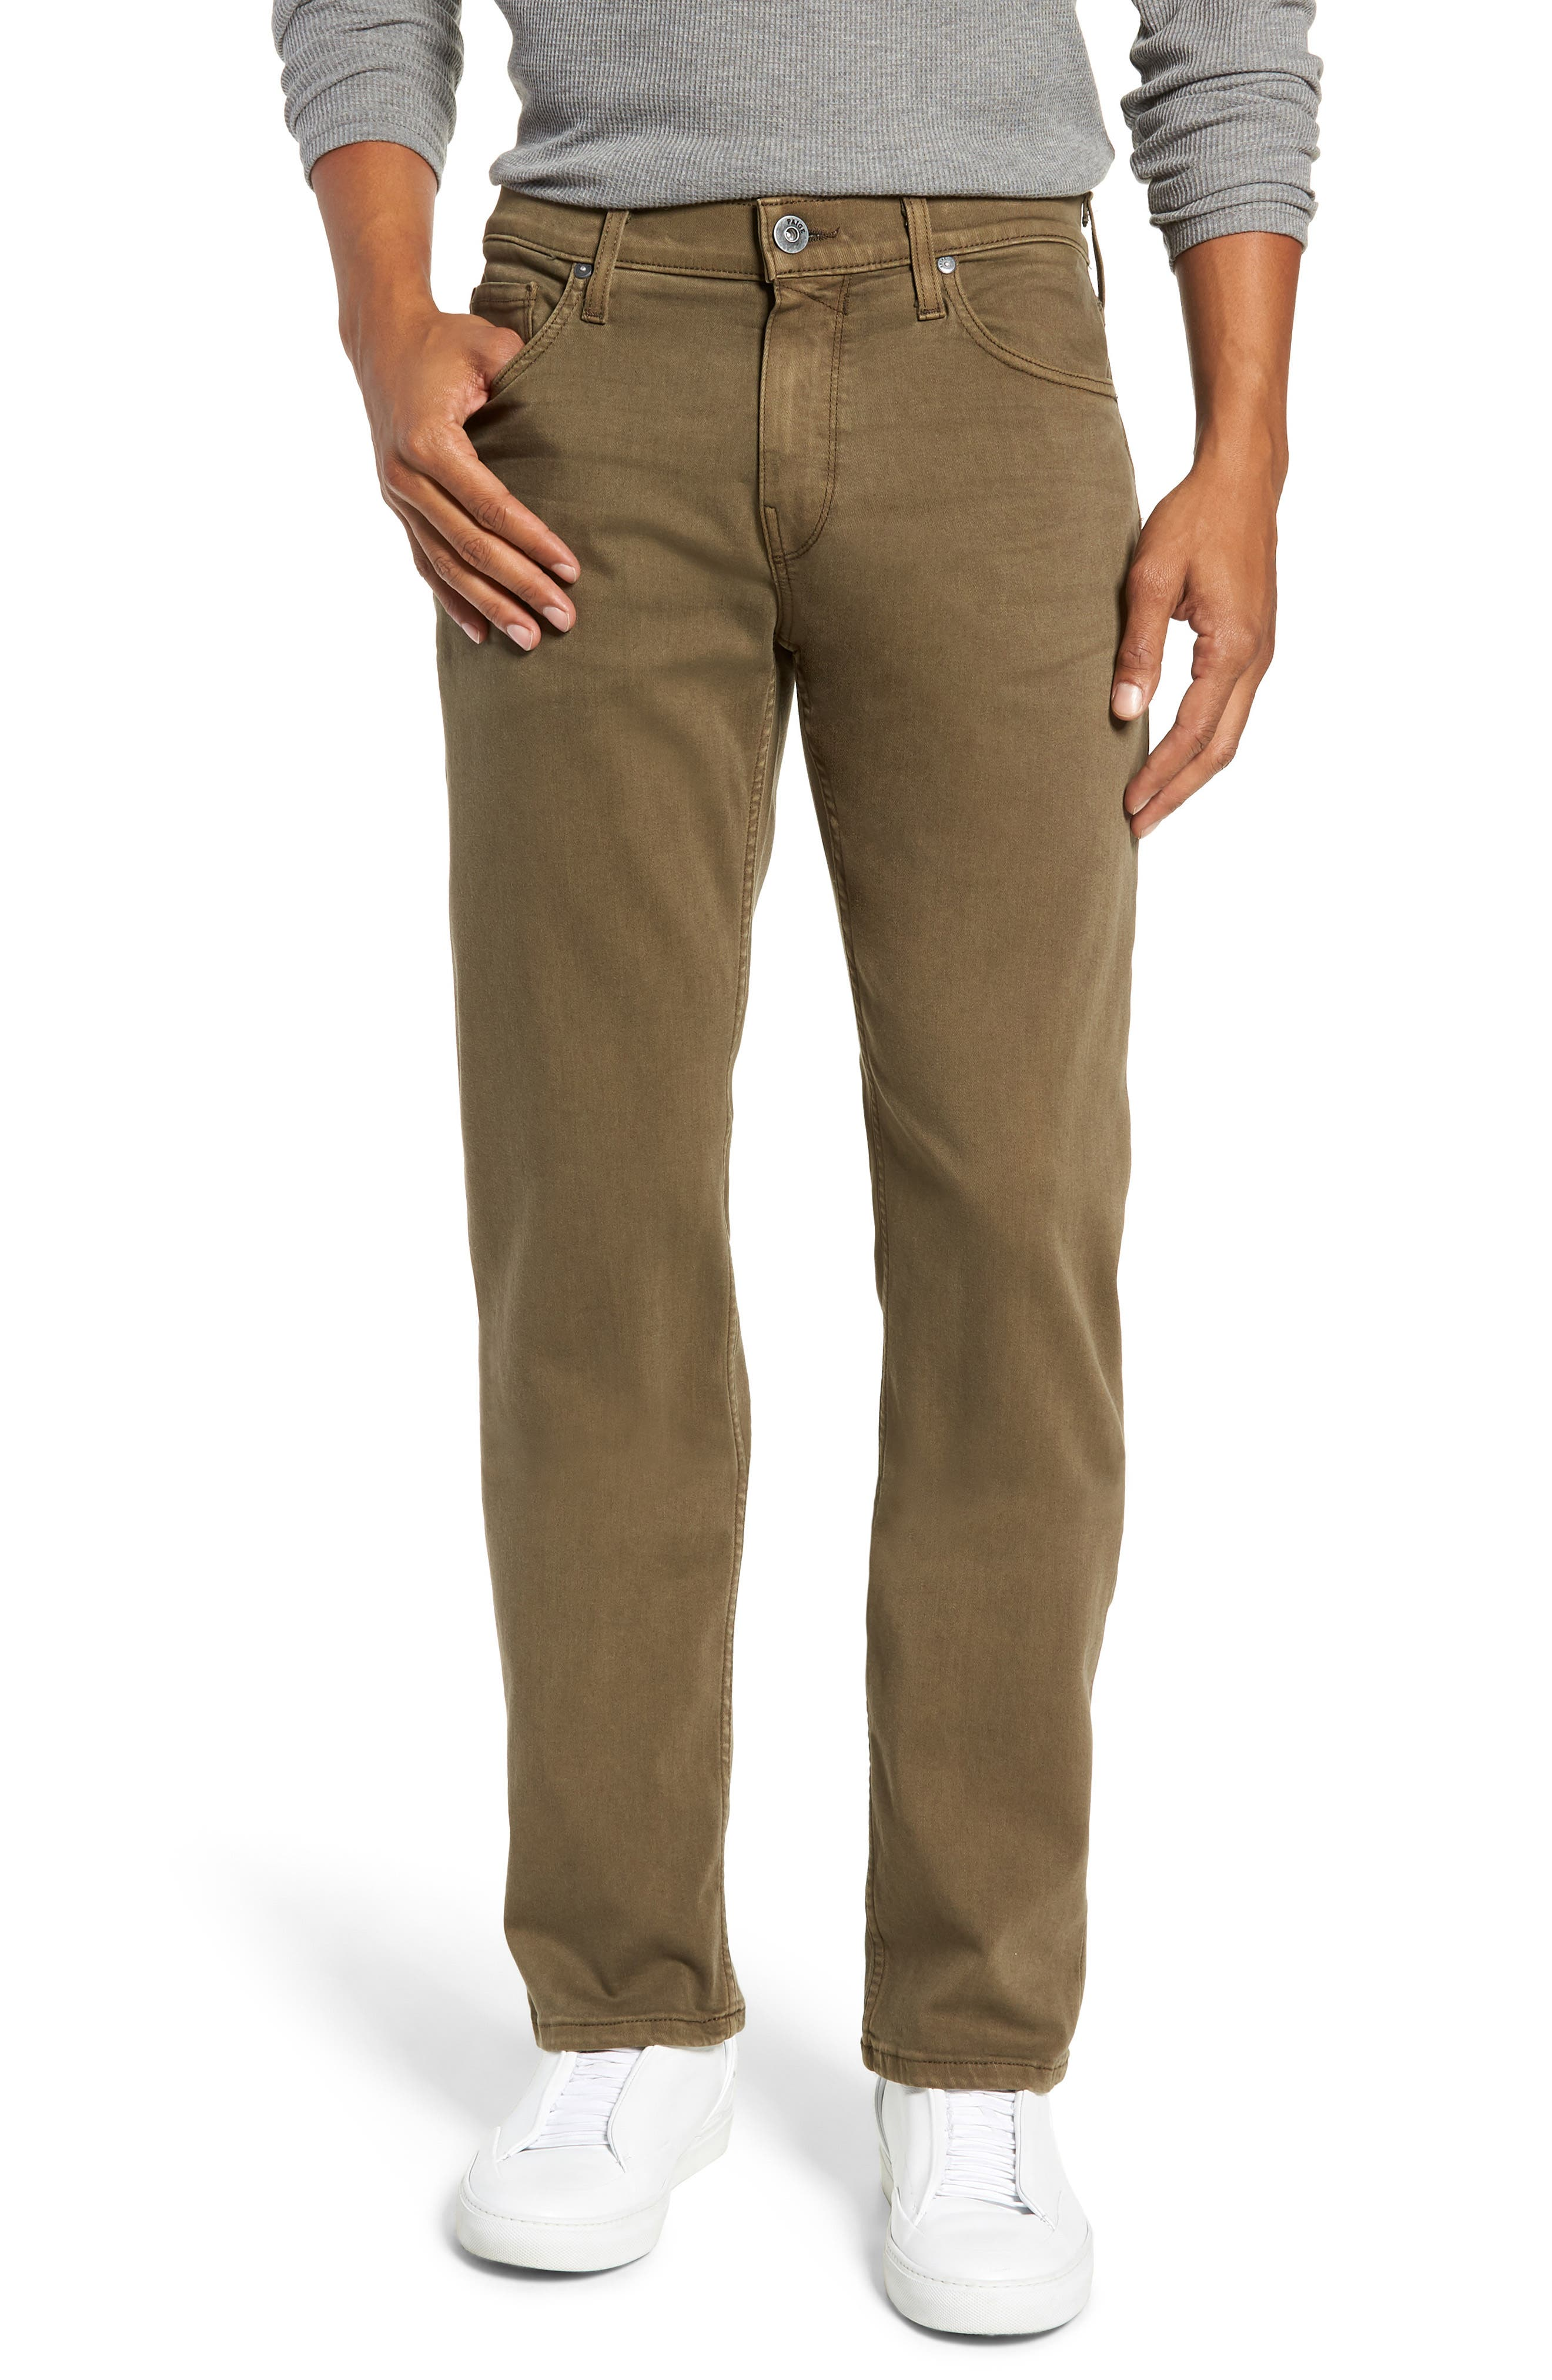 Transcend - Normandie Straight Leg Jeans,                             Main thumbnail 1, color,                             VINTAGE ARTICHOKE